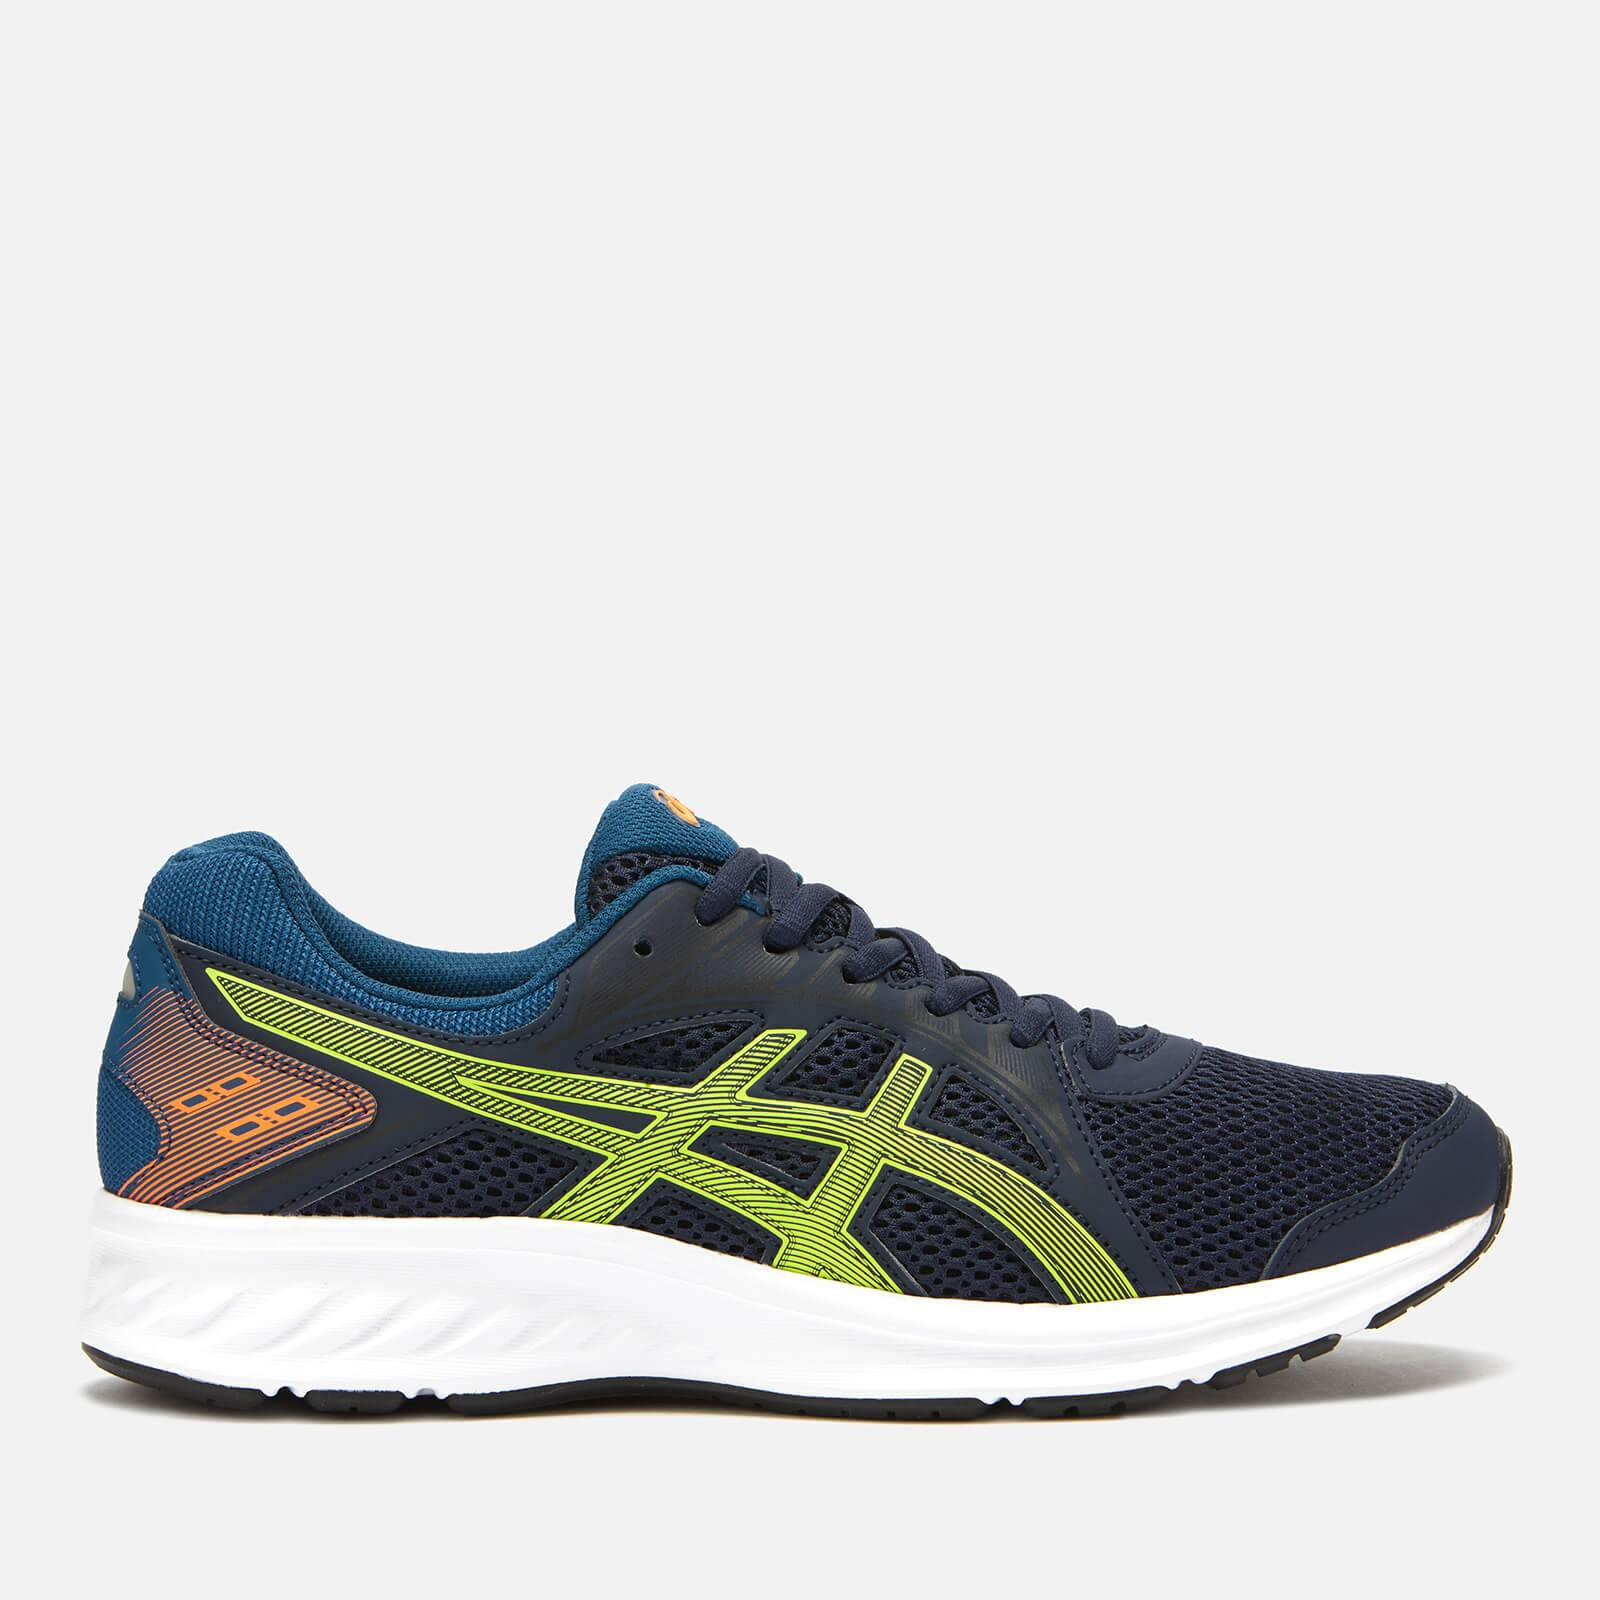 Asics Men's Running Jolt 2 Trainers - Midnight/Sour Yuzu - UK 9 - Blue